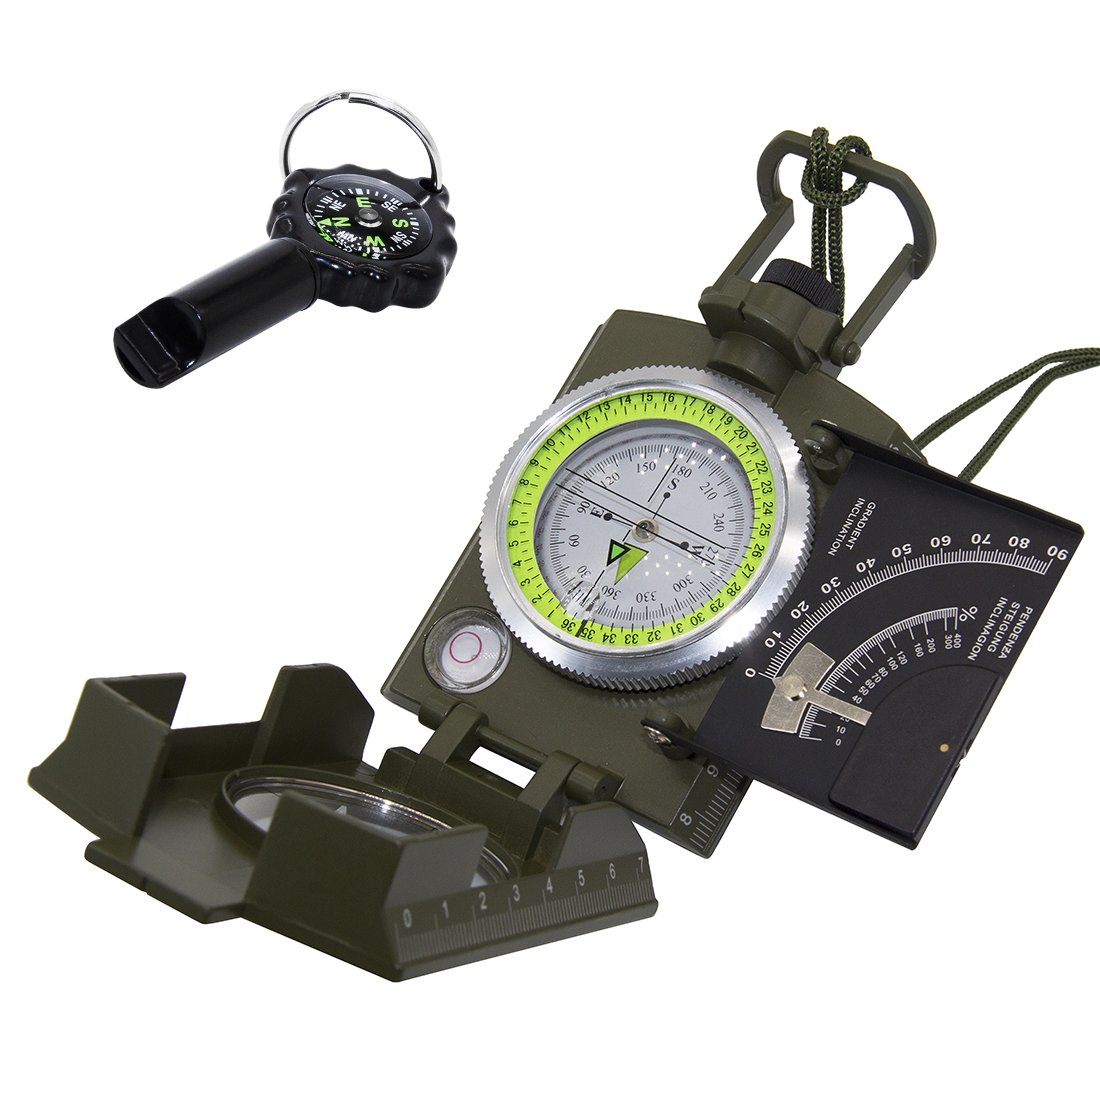 VOVCIG Professional Compass Metal Pocket Size Waterproof Shakeproof 50mm Dial Compass Multifunction Military Army Sighting Compass with Inclinometer for Camping Hiking Army Green